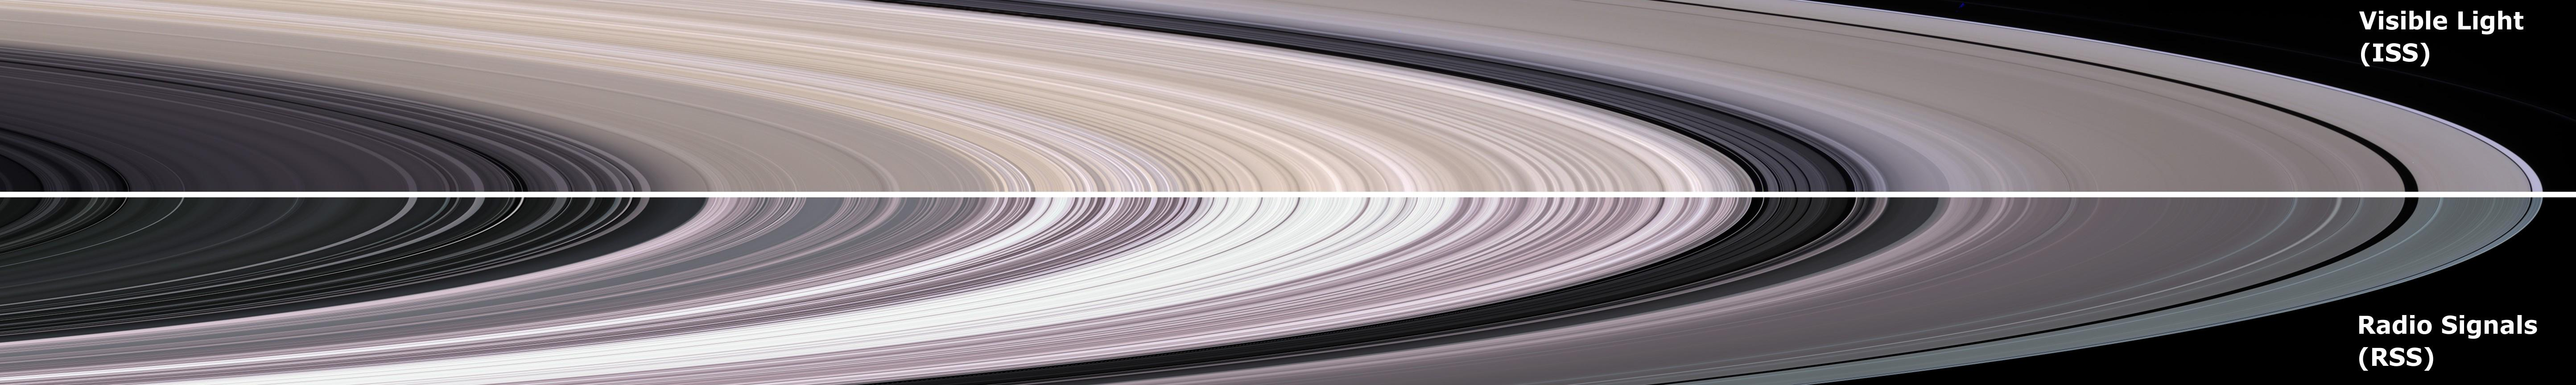 Saturn's rings in visible light and radio.jpg